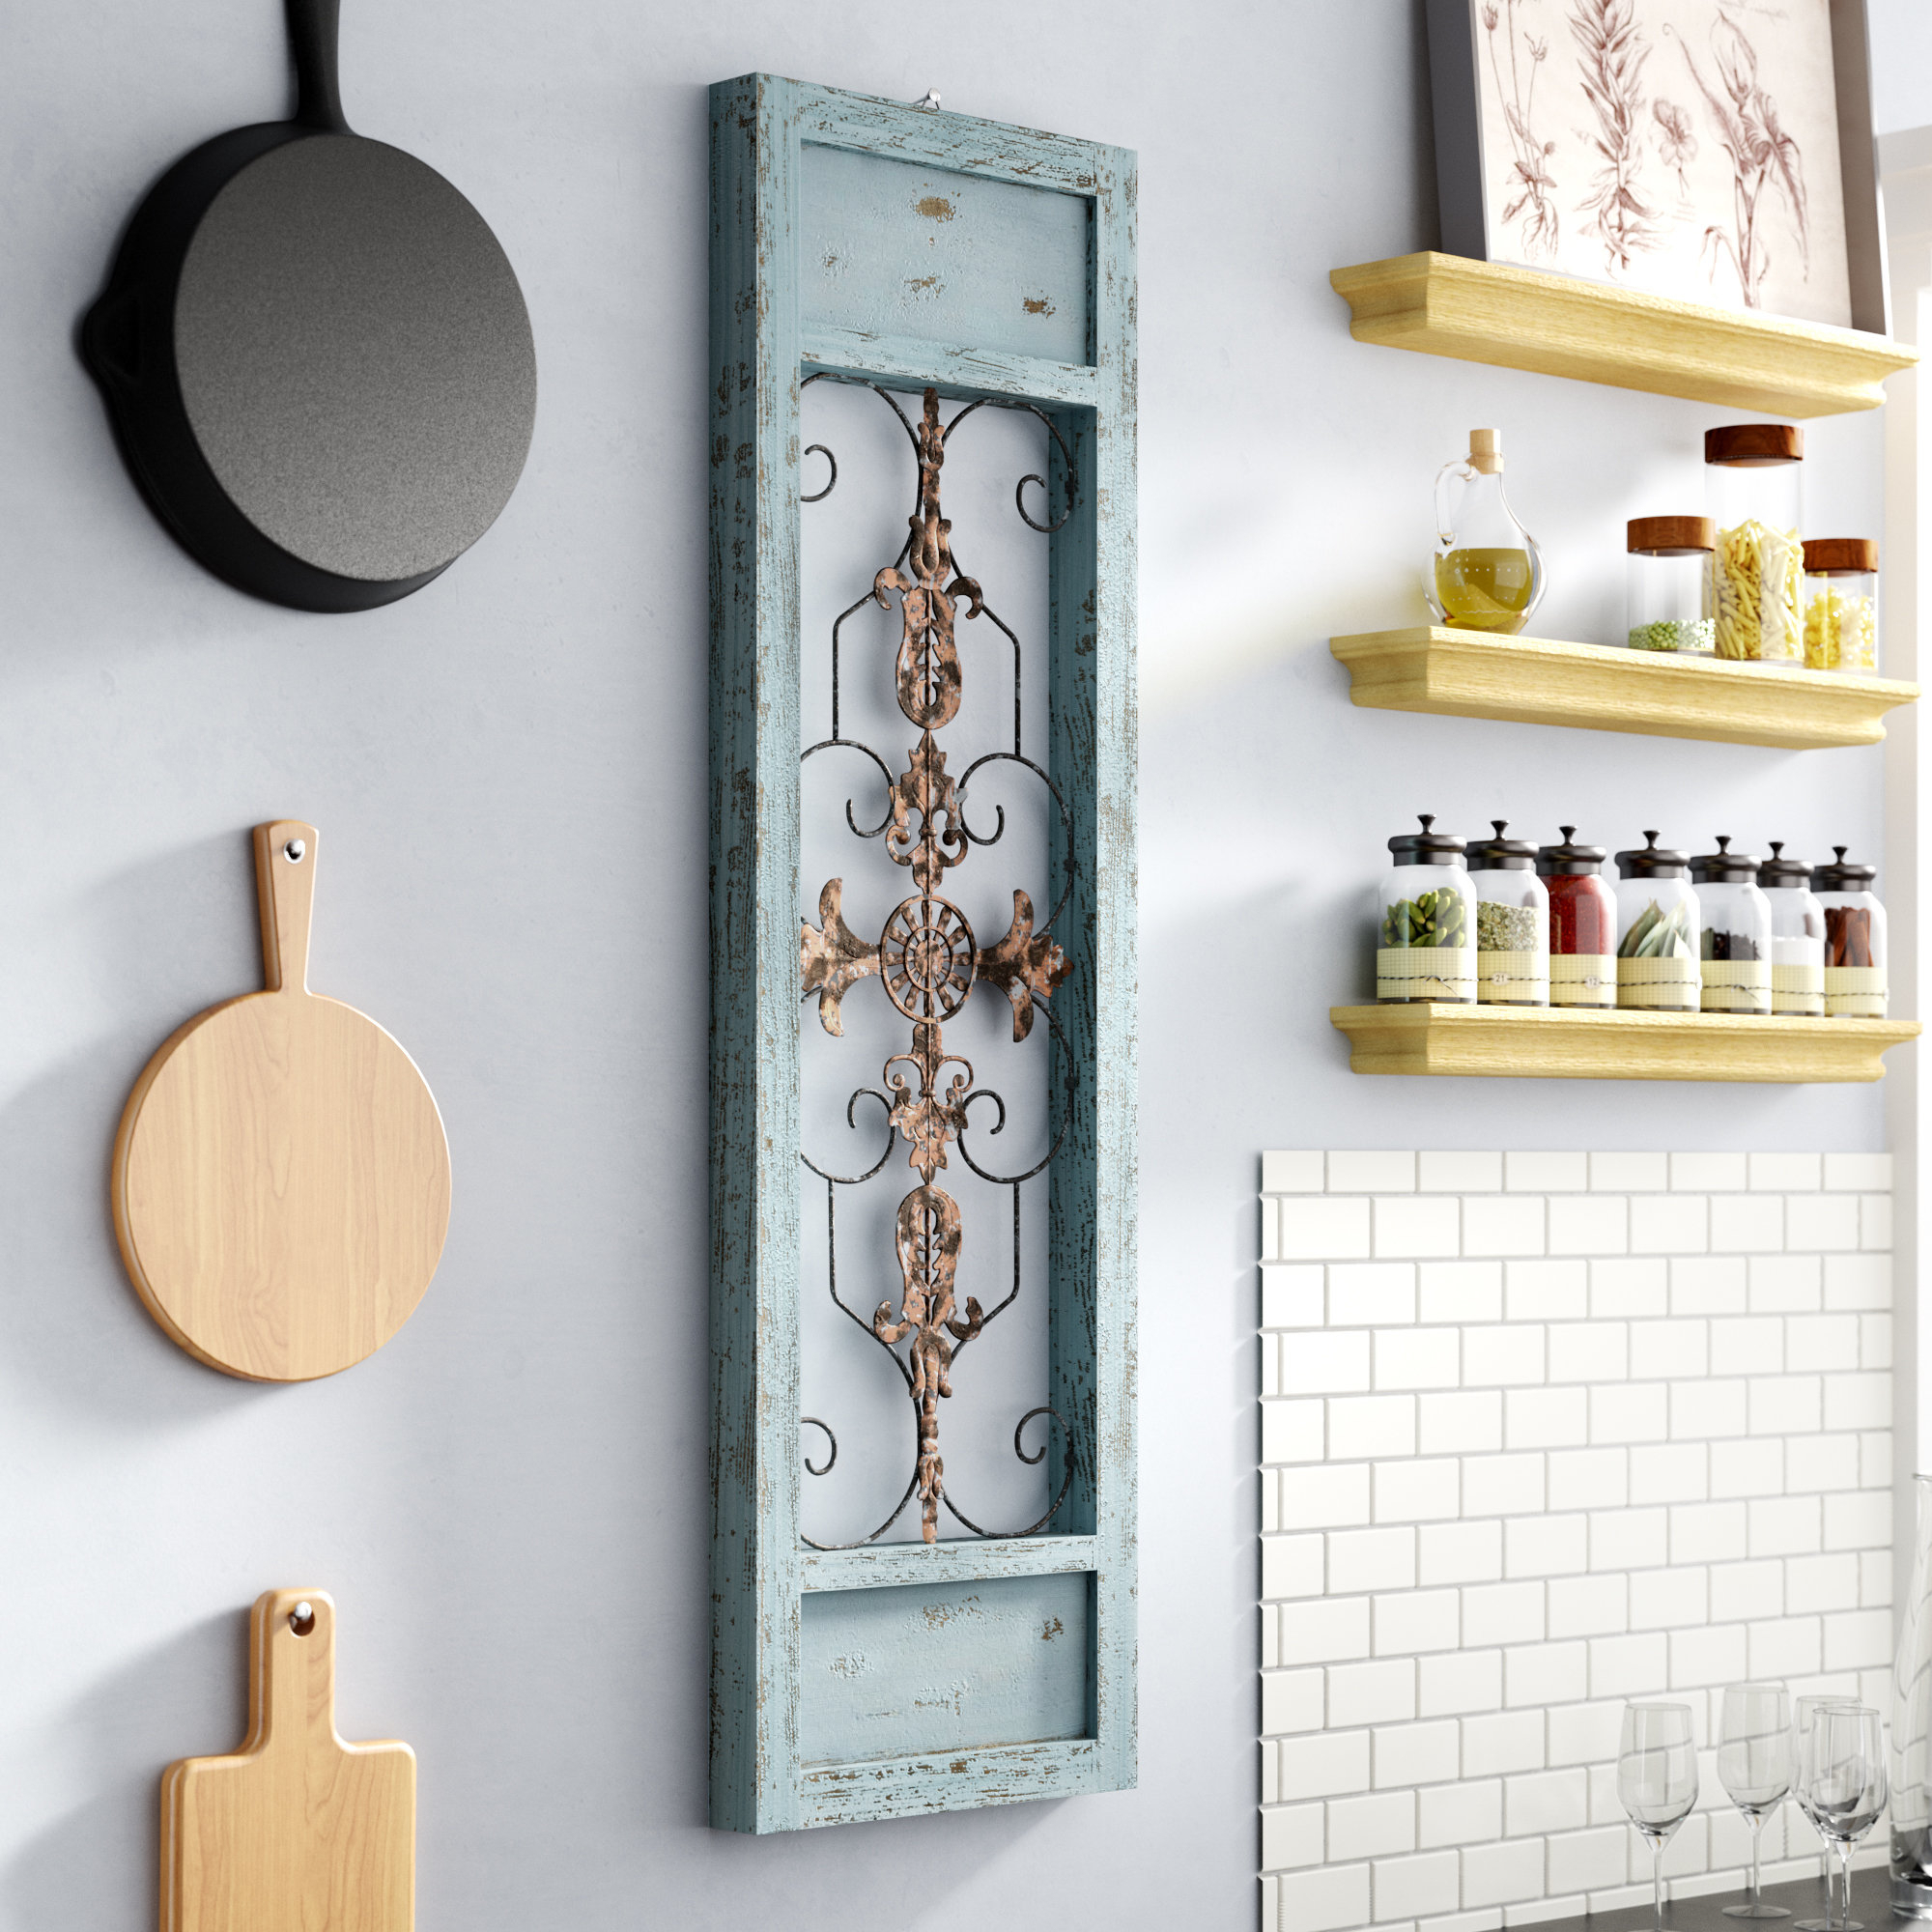 Wall Flower Decor | Wayfair in Farm Metal Wall Rack And 3 Tin Pot With Hanger Wall Decor (Image 28 of 30)